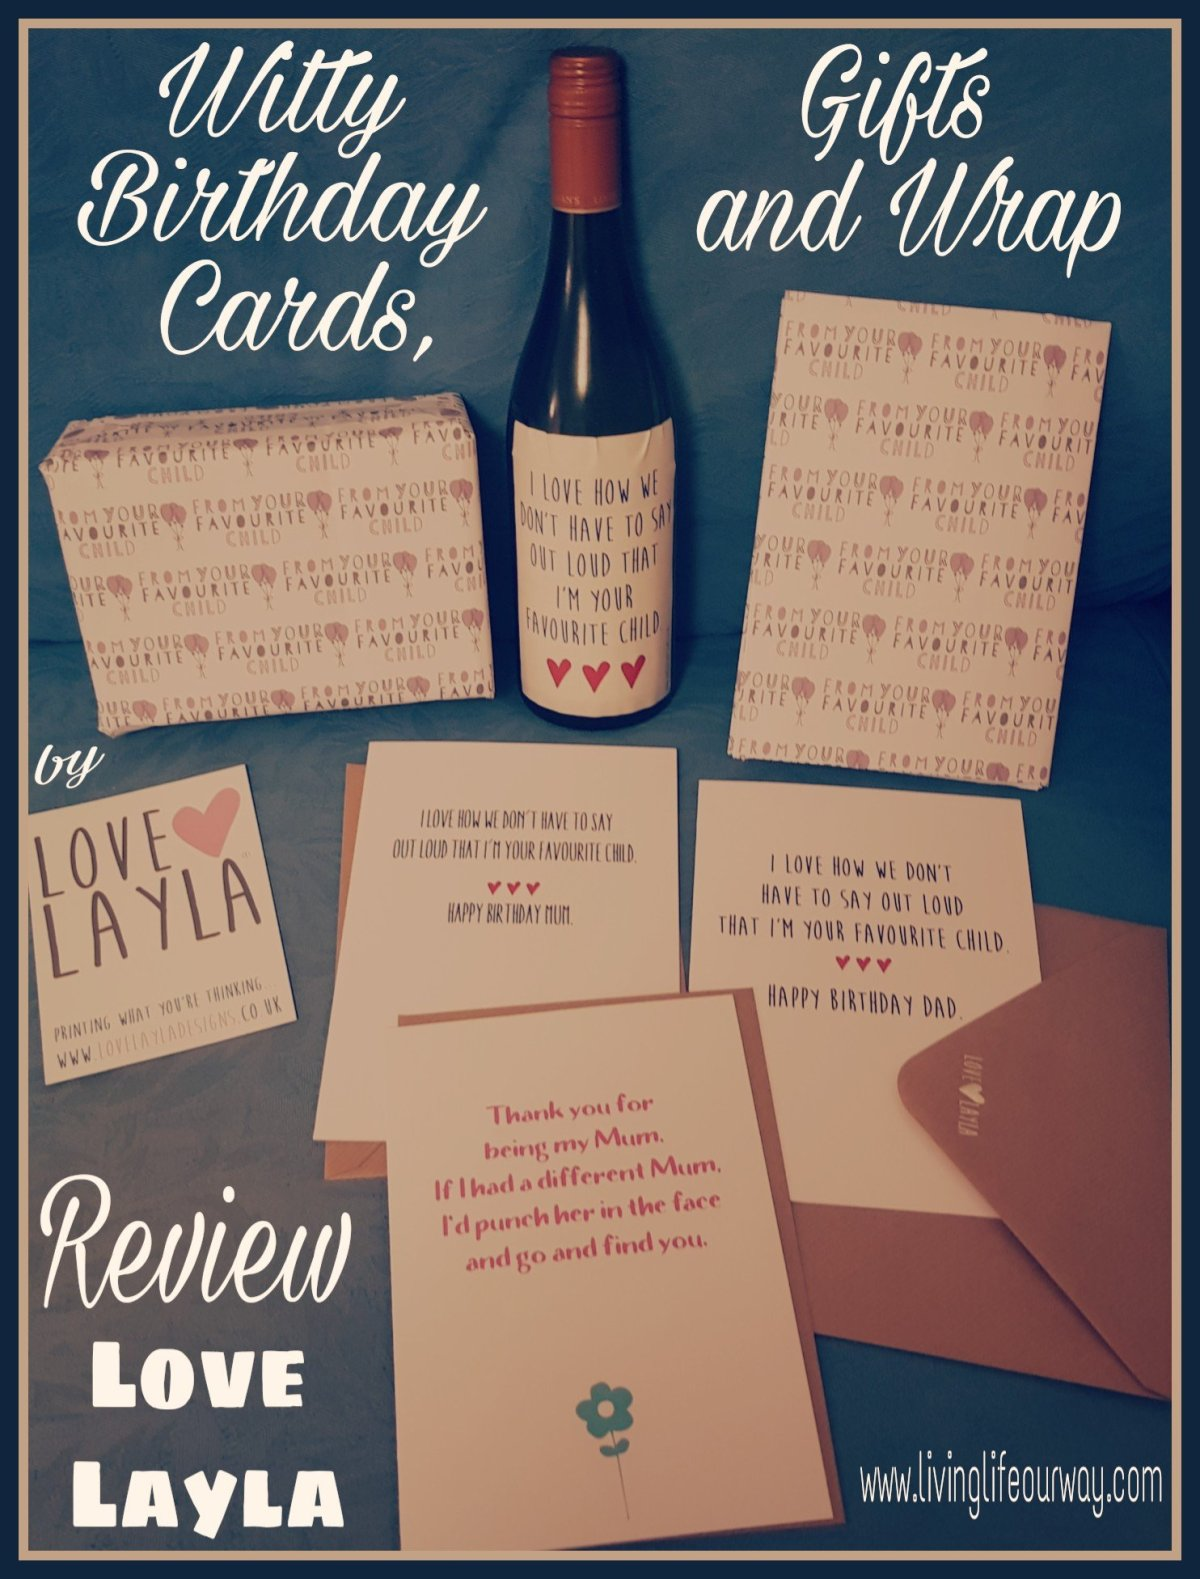 Love Layla: Witty Birthday Cards, Gifts and Wrap (Review)